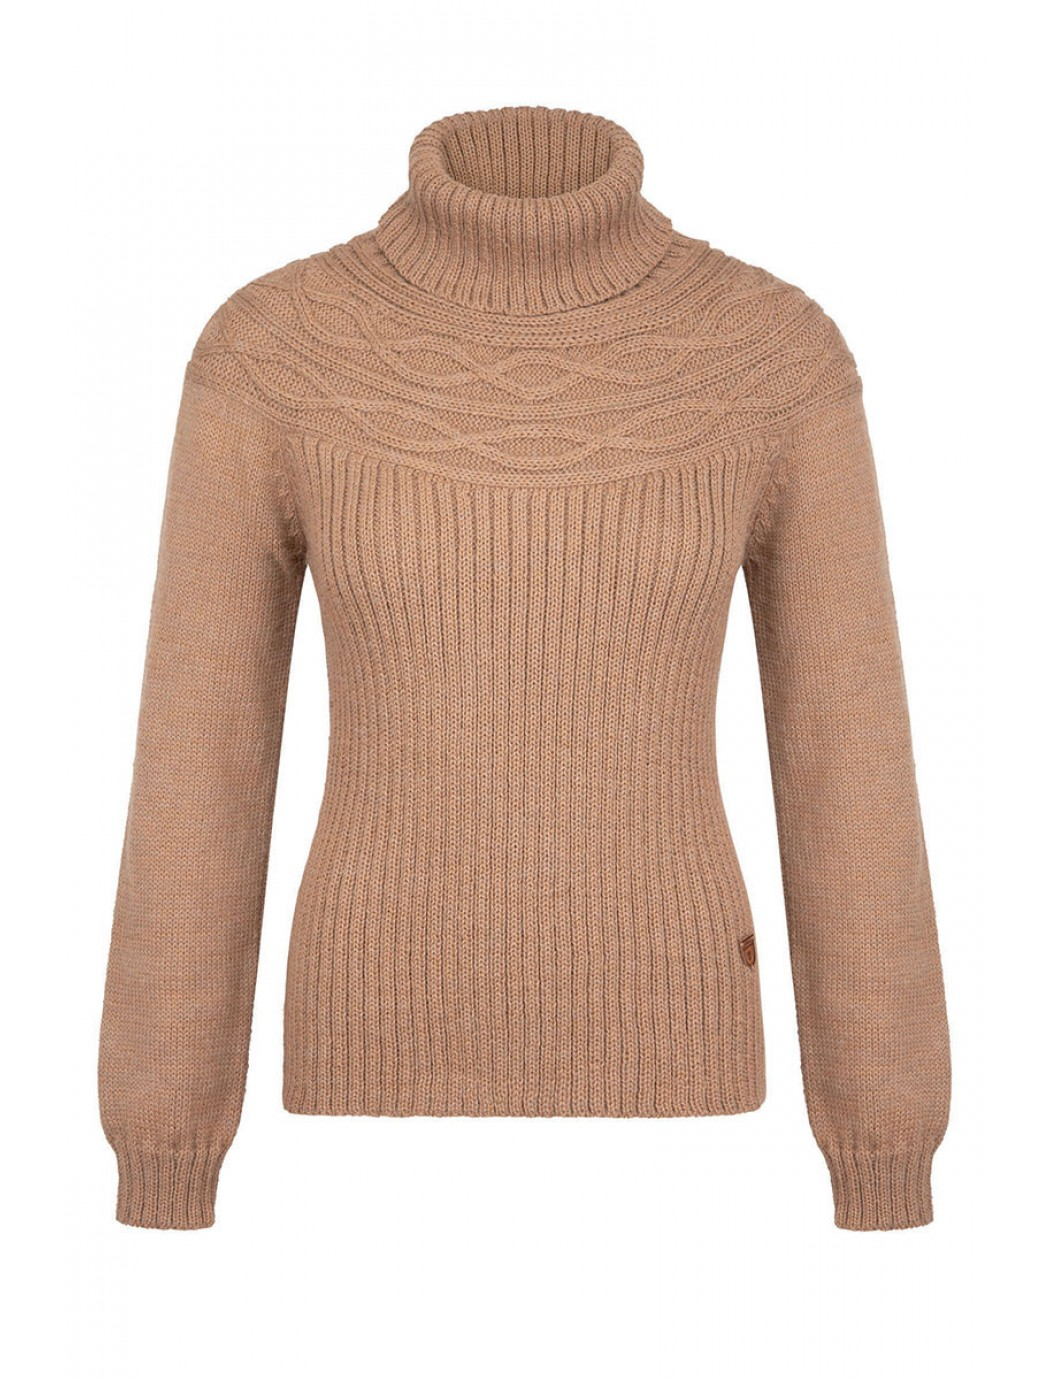 claddagh-womens-knits-cottons-camel